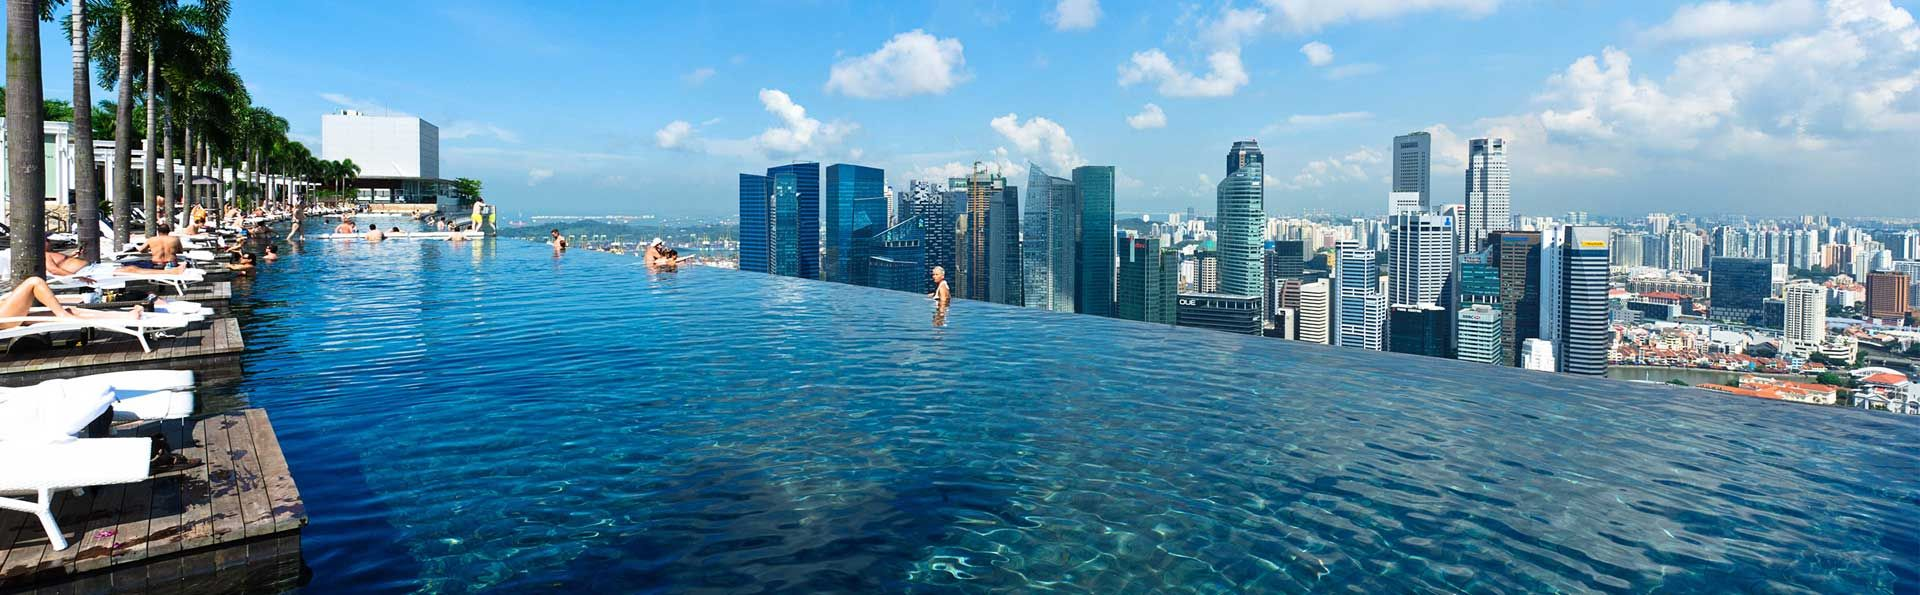 Infinity Pool At Rooftop Of Marina Bay Sands With View Of